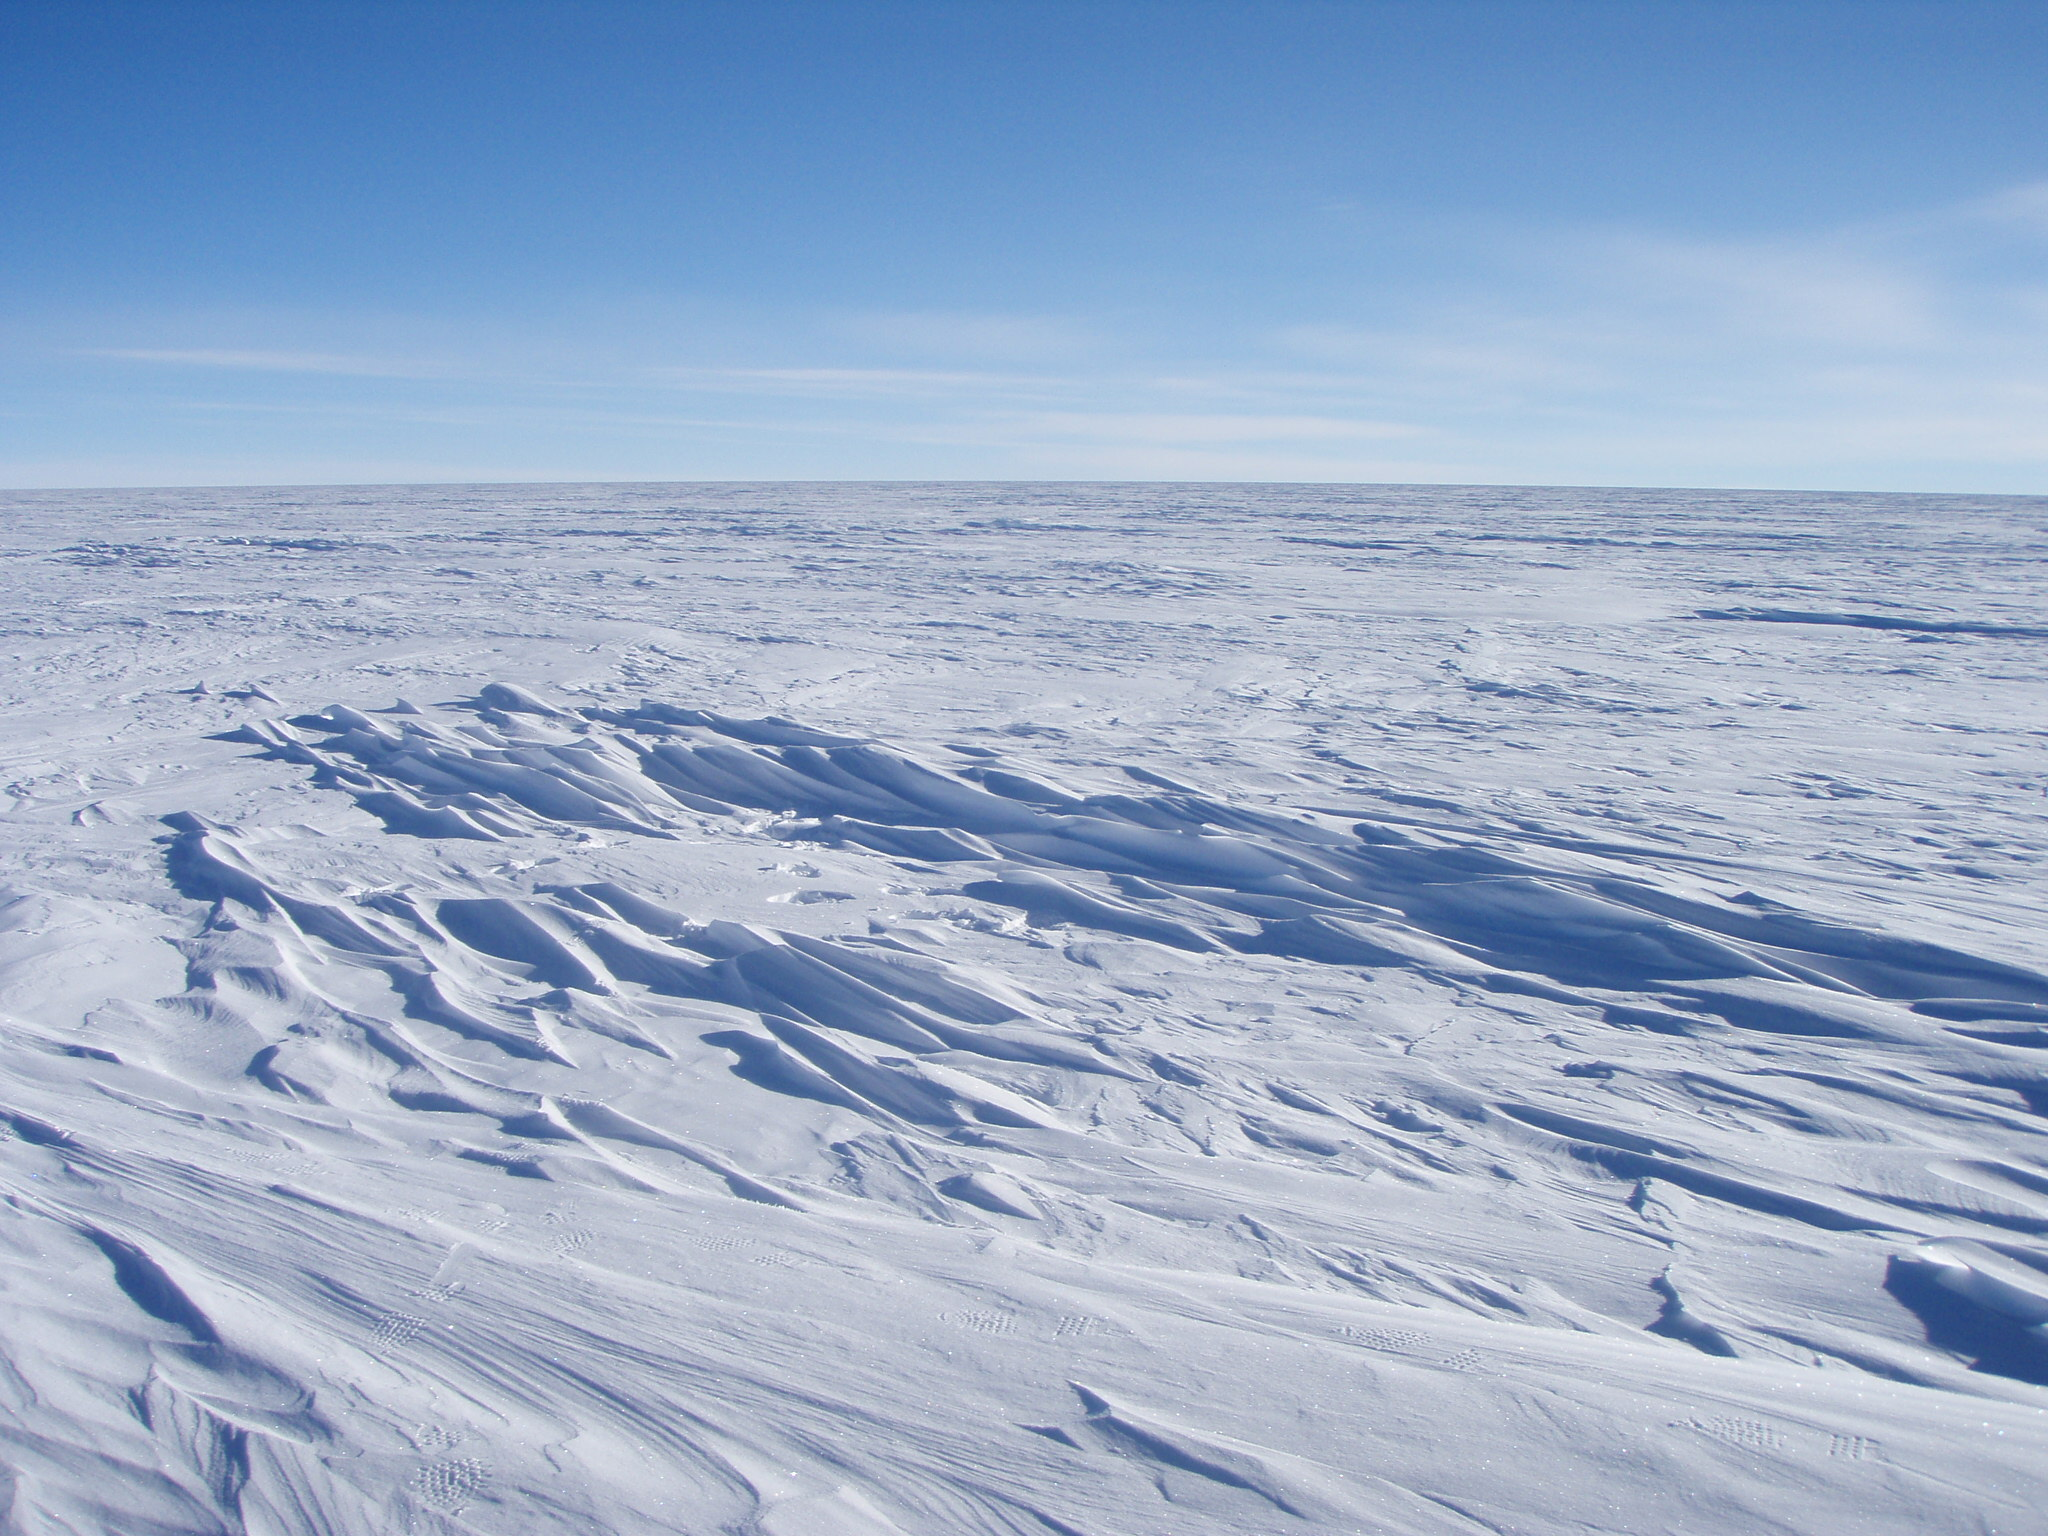 Sastrugi snow formations on the surface of the snow in East Antarctica